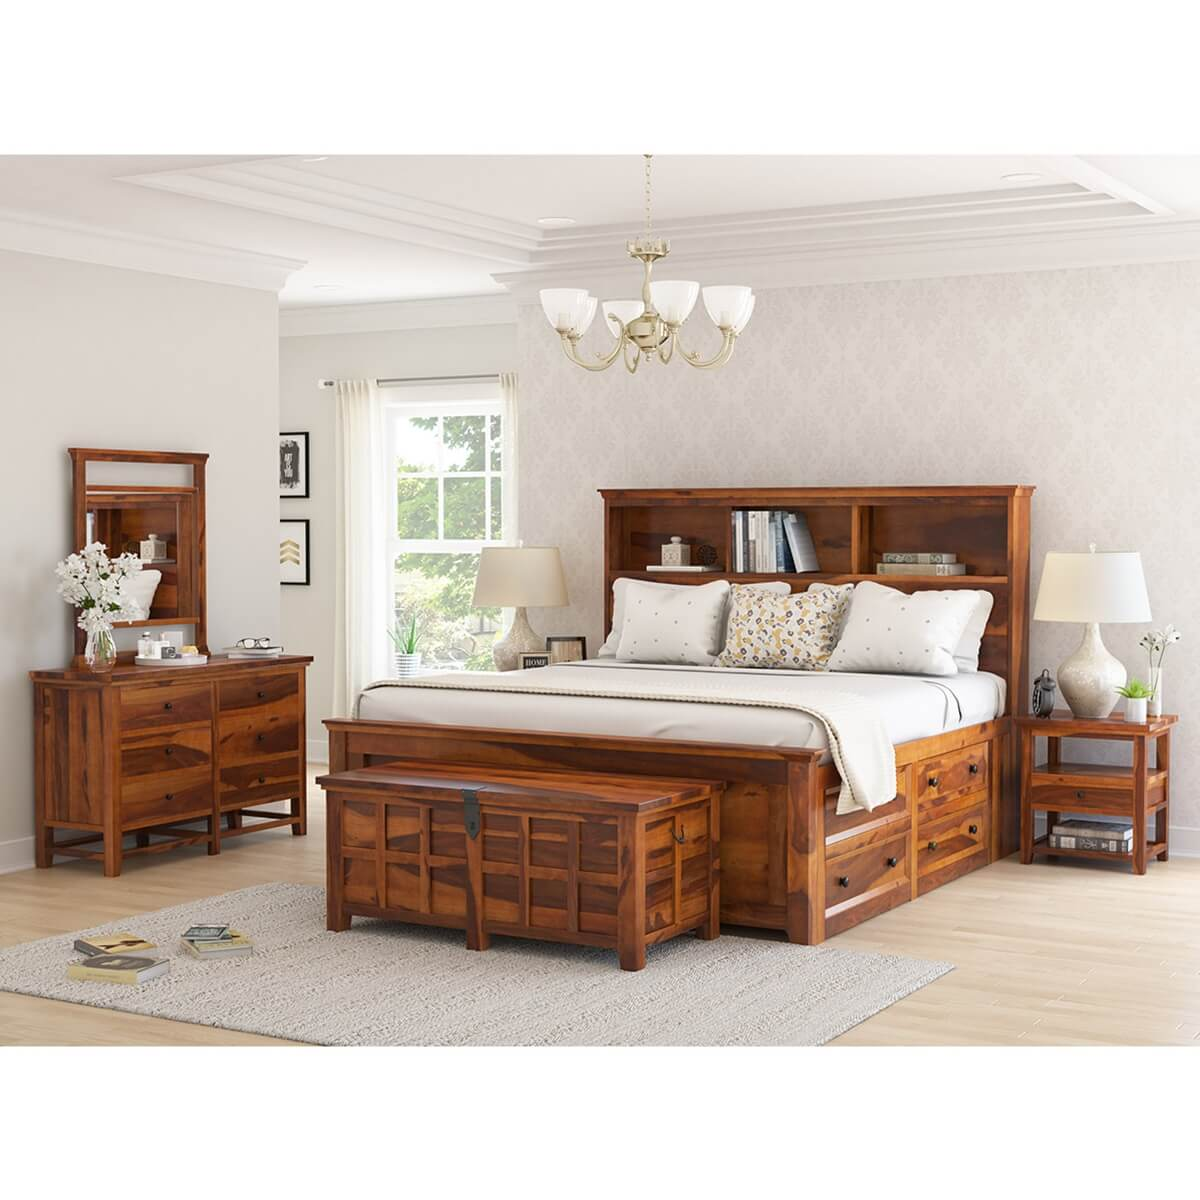 contemporary platform bedroom sets mission modern solid wood king size platform bed 7pc 14977